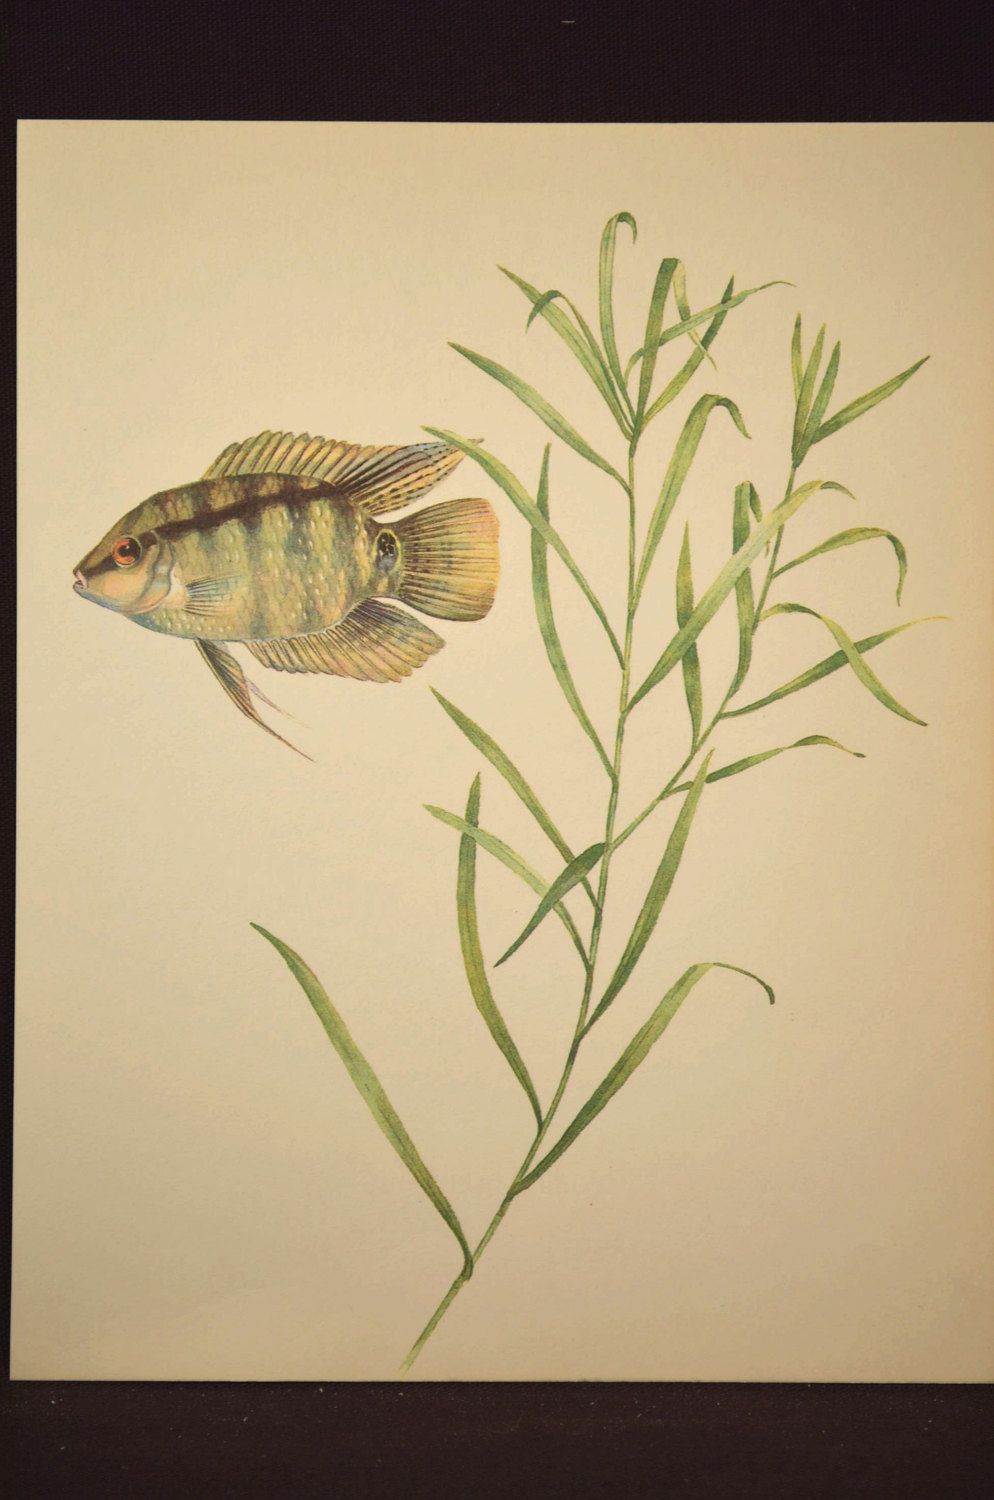 Tropical Fish Print Aquarium Fish Wall Art Decor Aquatic Plant ...